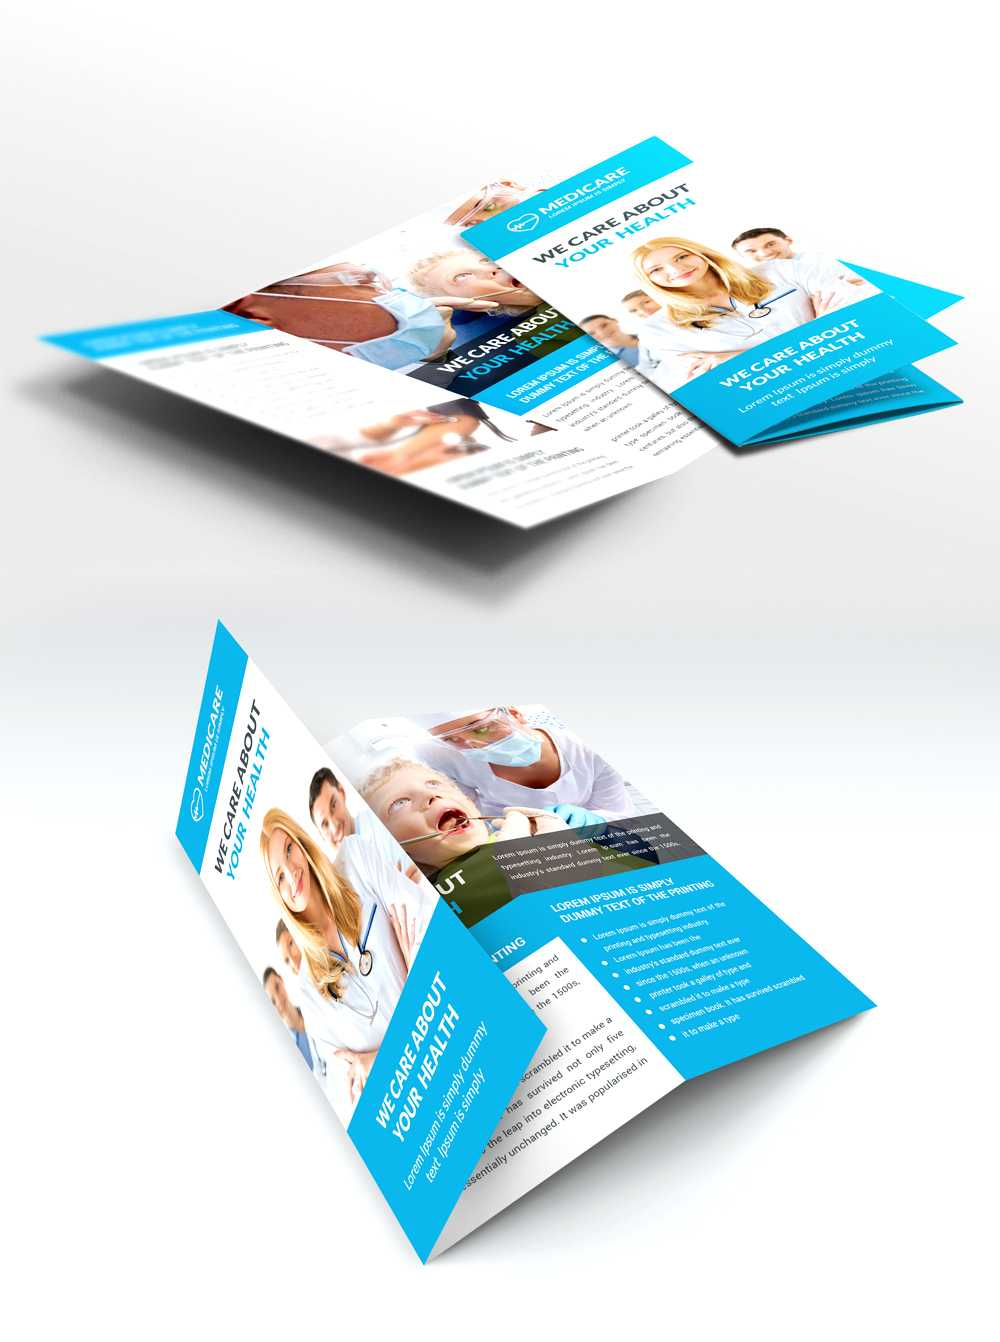 Medical Care And Hospital Trifold Brochure Template Free Psd Regarding Medical Office Brochure Templates